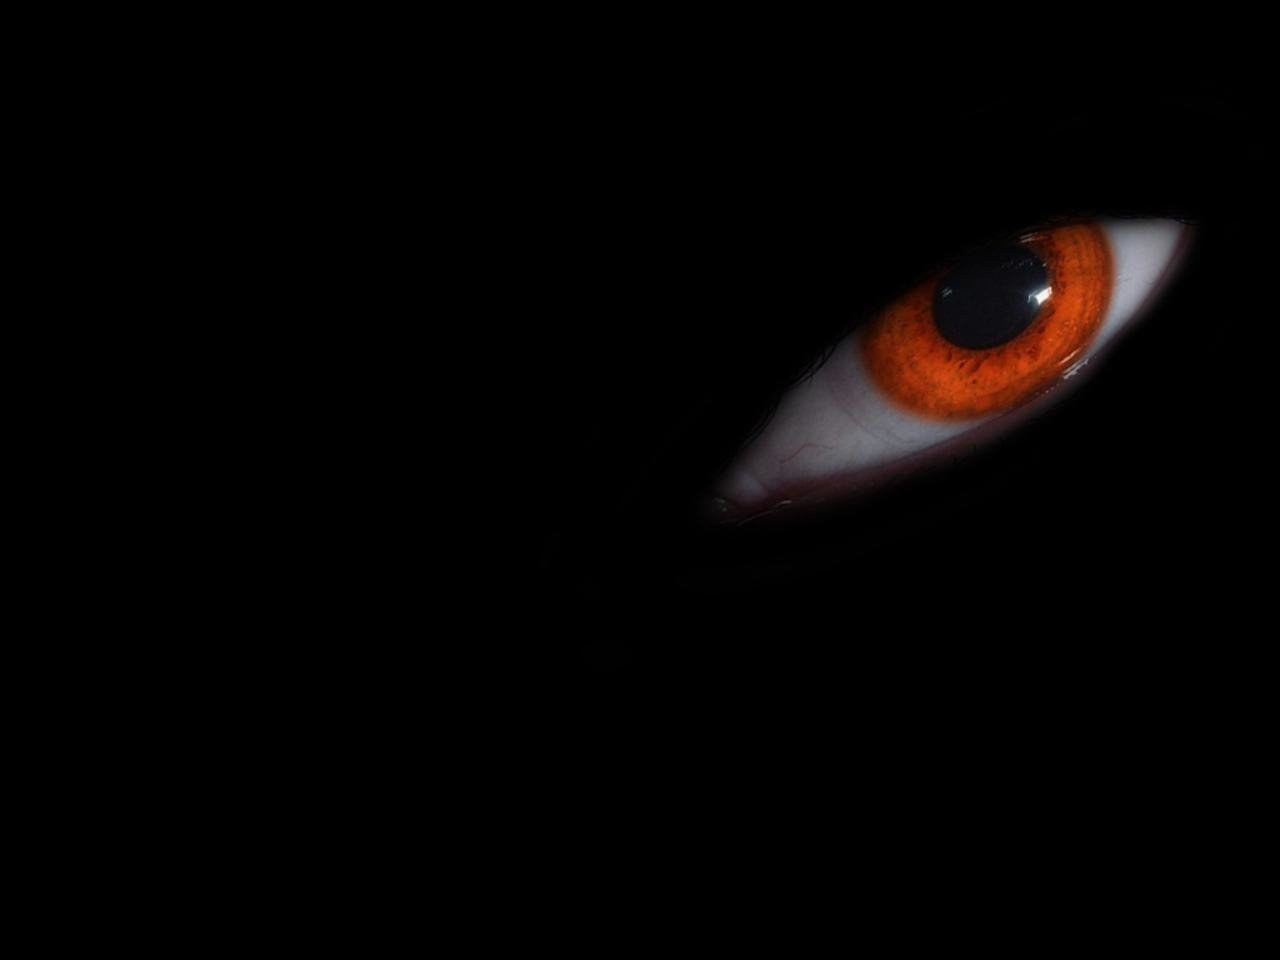 53 Eye HD Wallpapers Background Images 1280x960